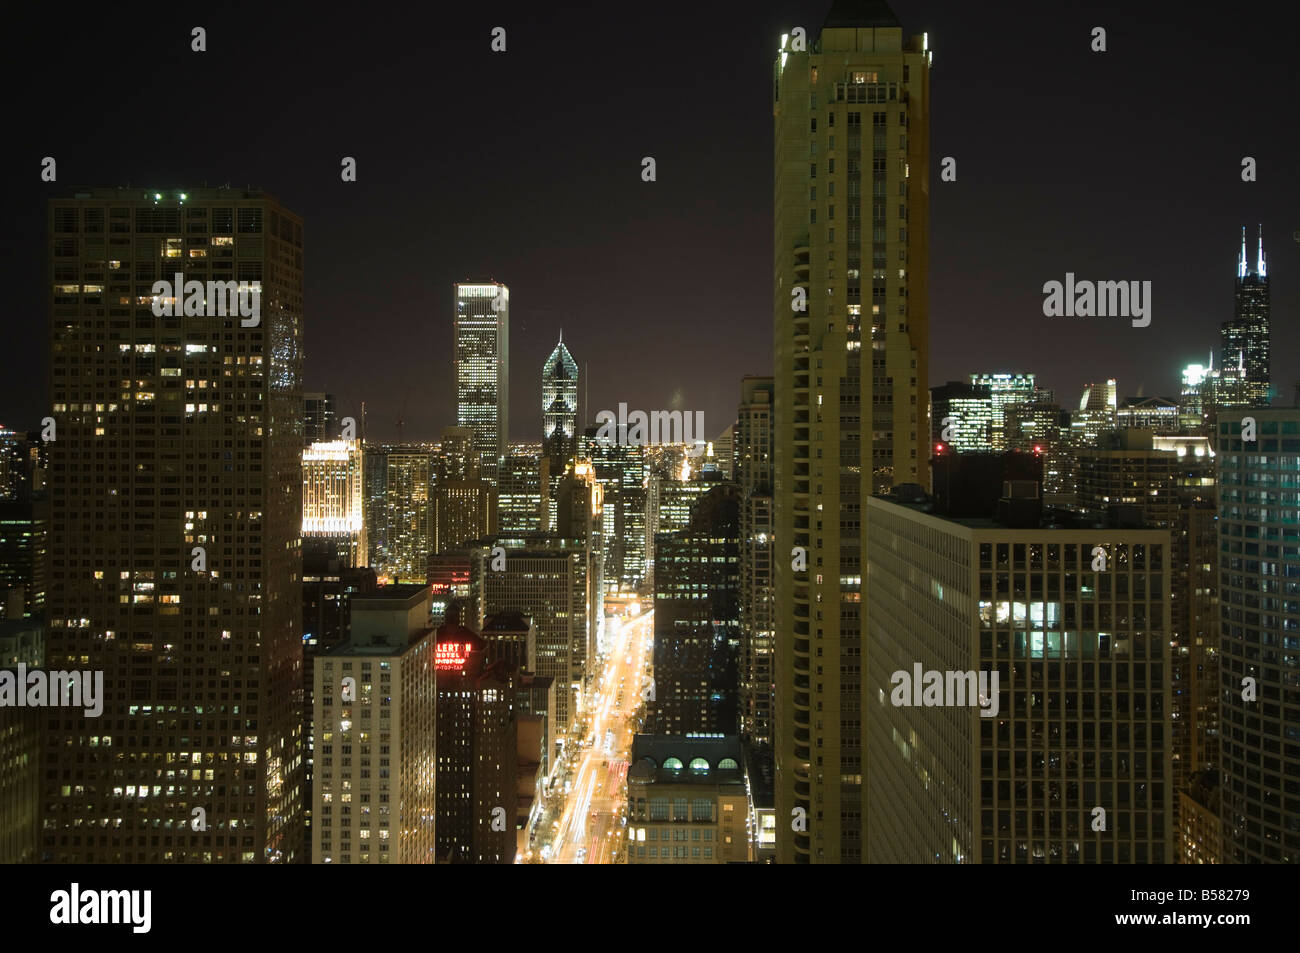 Night Shot de la Magnificent Mile, tomada desde el edificio Hancock, Chicago, Illinois, Estados Unidos de América, Imagen De Stock